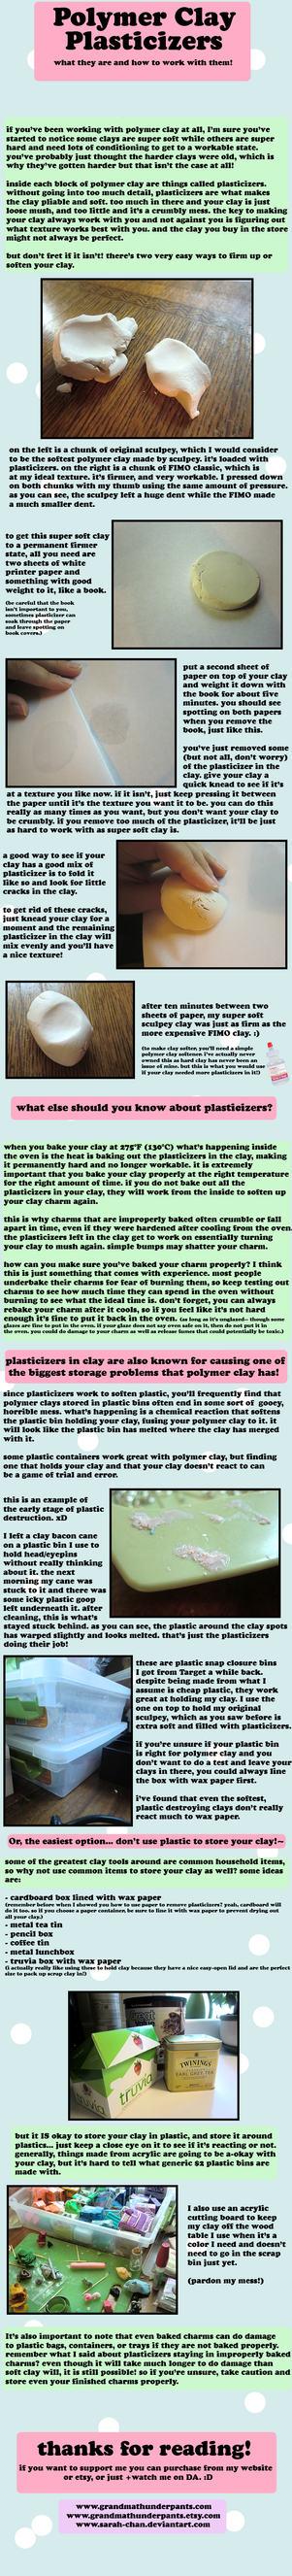 Polymer Clay Plasticizer Quick Guide by GrandmaThunderpants